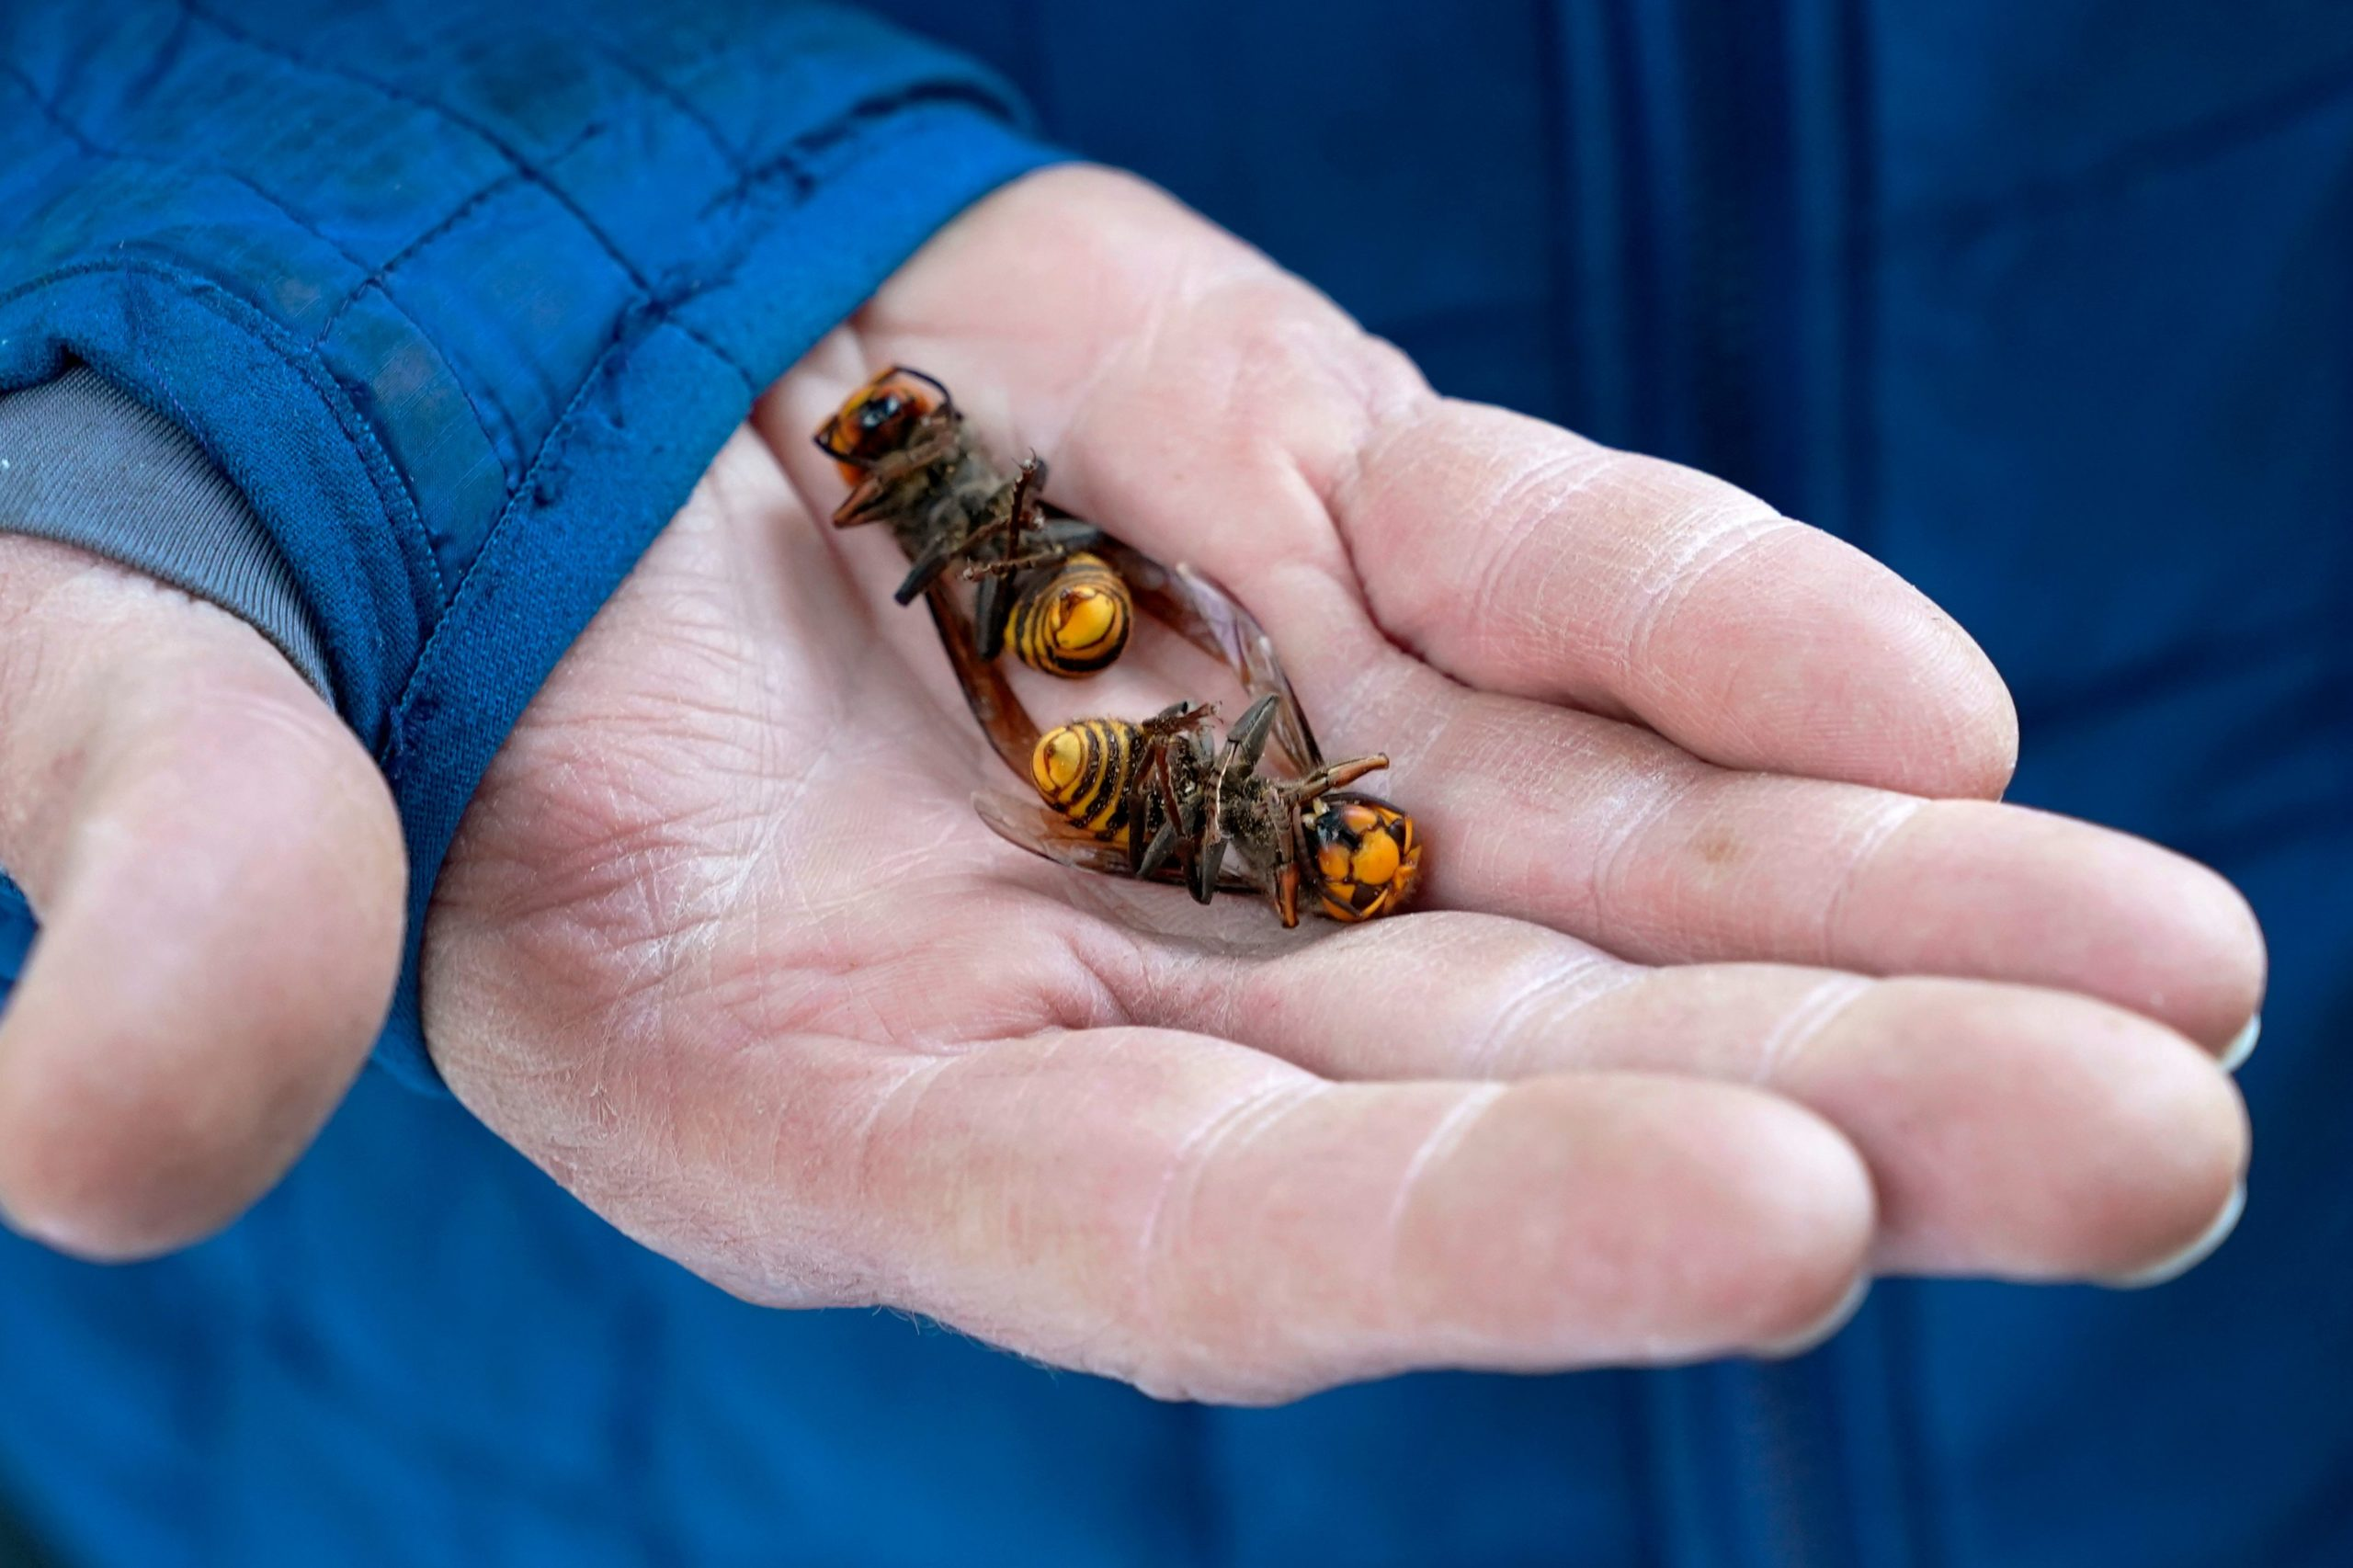 A Washington State Department of Agriculture workers holds two of the dozens of Asian giant hornets vacuumed from a tree on October 24, 2020, in Blaine, Washington. - Scientists in Washington state discovered the first nest earlier in the week of so-called murder hornets in the United States and worked to wipe it out Saturday morning to protect native honeybees. Workers with the state Agriculture Department spent weeks searching, trapping and using dental floss to tie tracking devices to Asian giant hornets, which can deliver painful stings to people and spit venom but are the biggest threat to honeybees that farmers depend on to pollinate crops. (Photo by Elaine Thompson / POOL / AFP) (Photo by ELAINE THOMPSON/POOL/AFP via Getty Images)